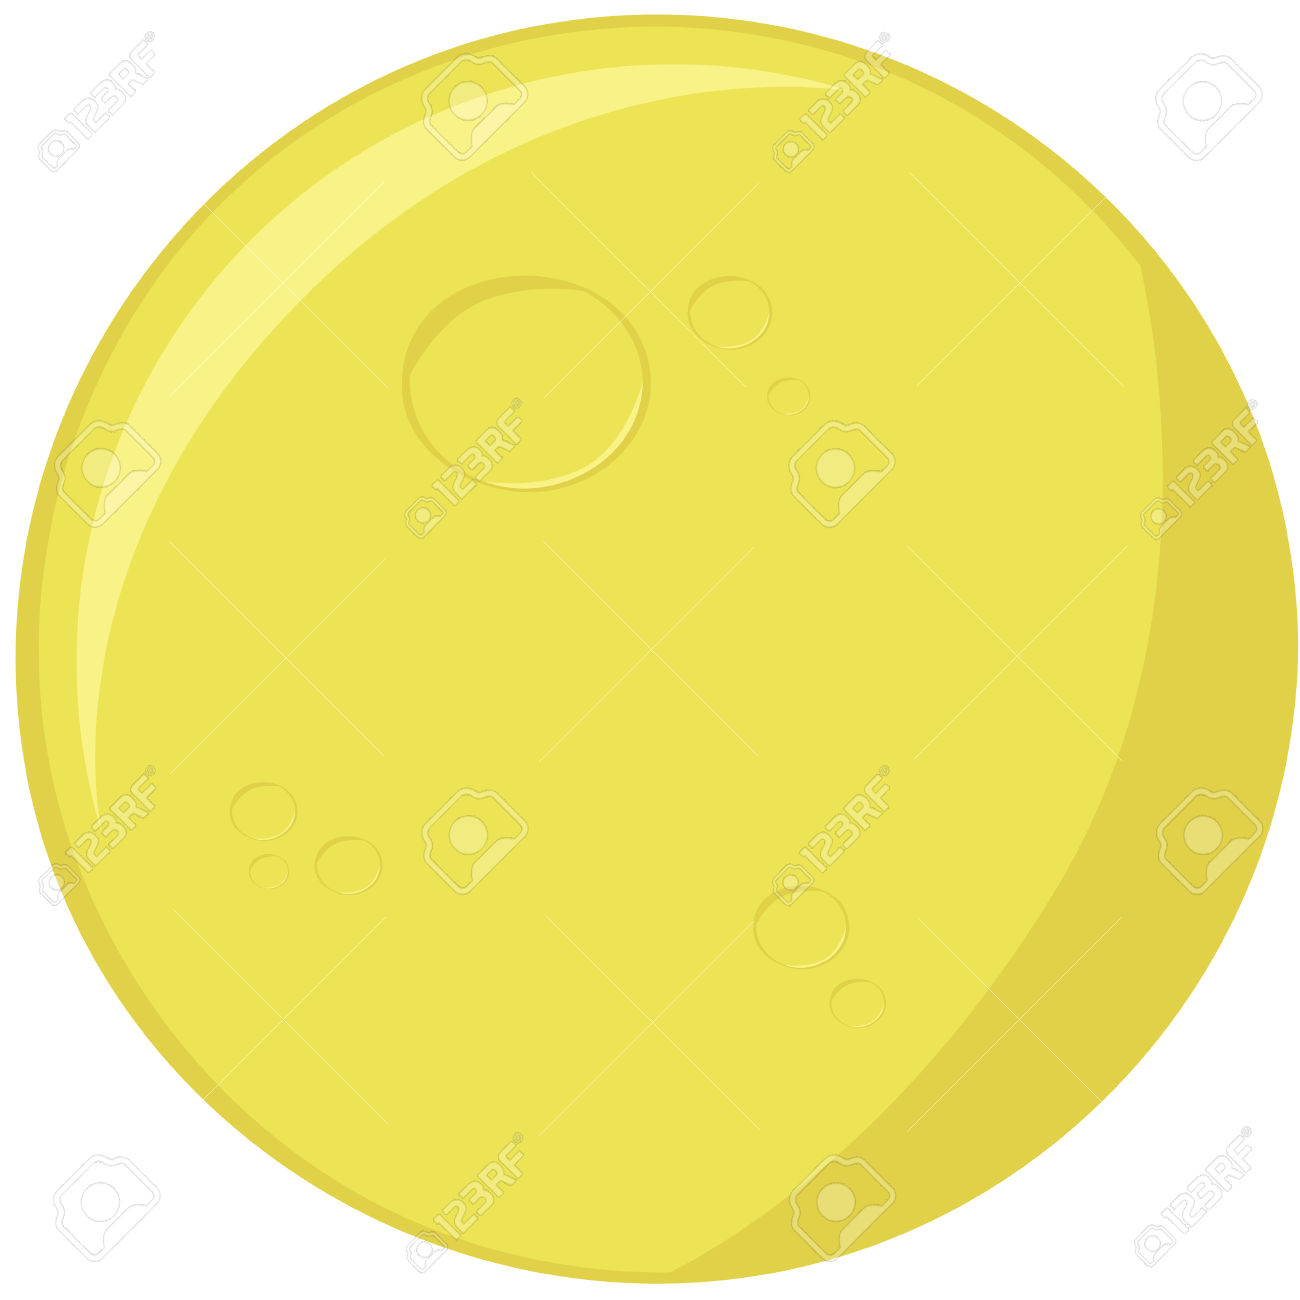 Moon clipart round Playing jpg Role Camp yellow